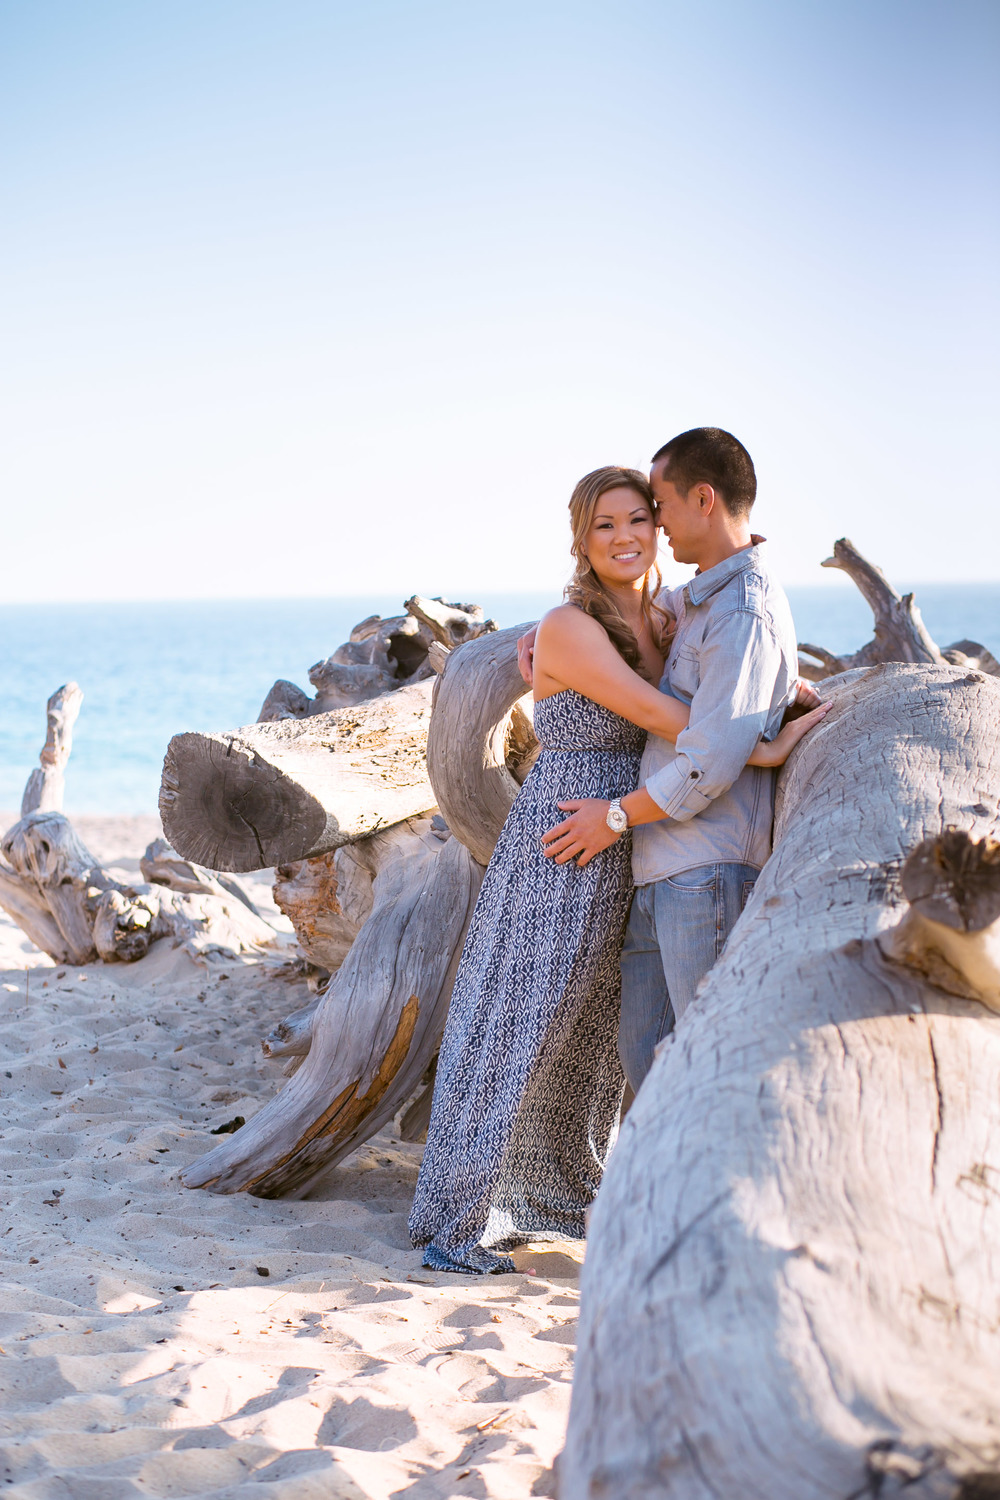 20131020_CHRIS_JEFF_MALIBU_BEACH_ENGAGEMENT_CHRIS_HOLT_PHOTOGRAPHY_003.jpg